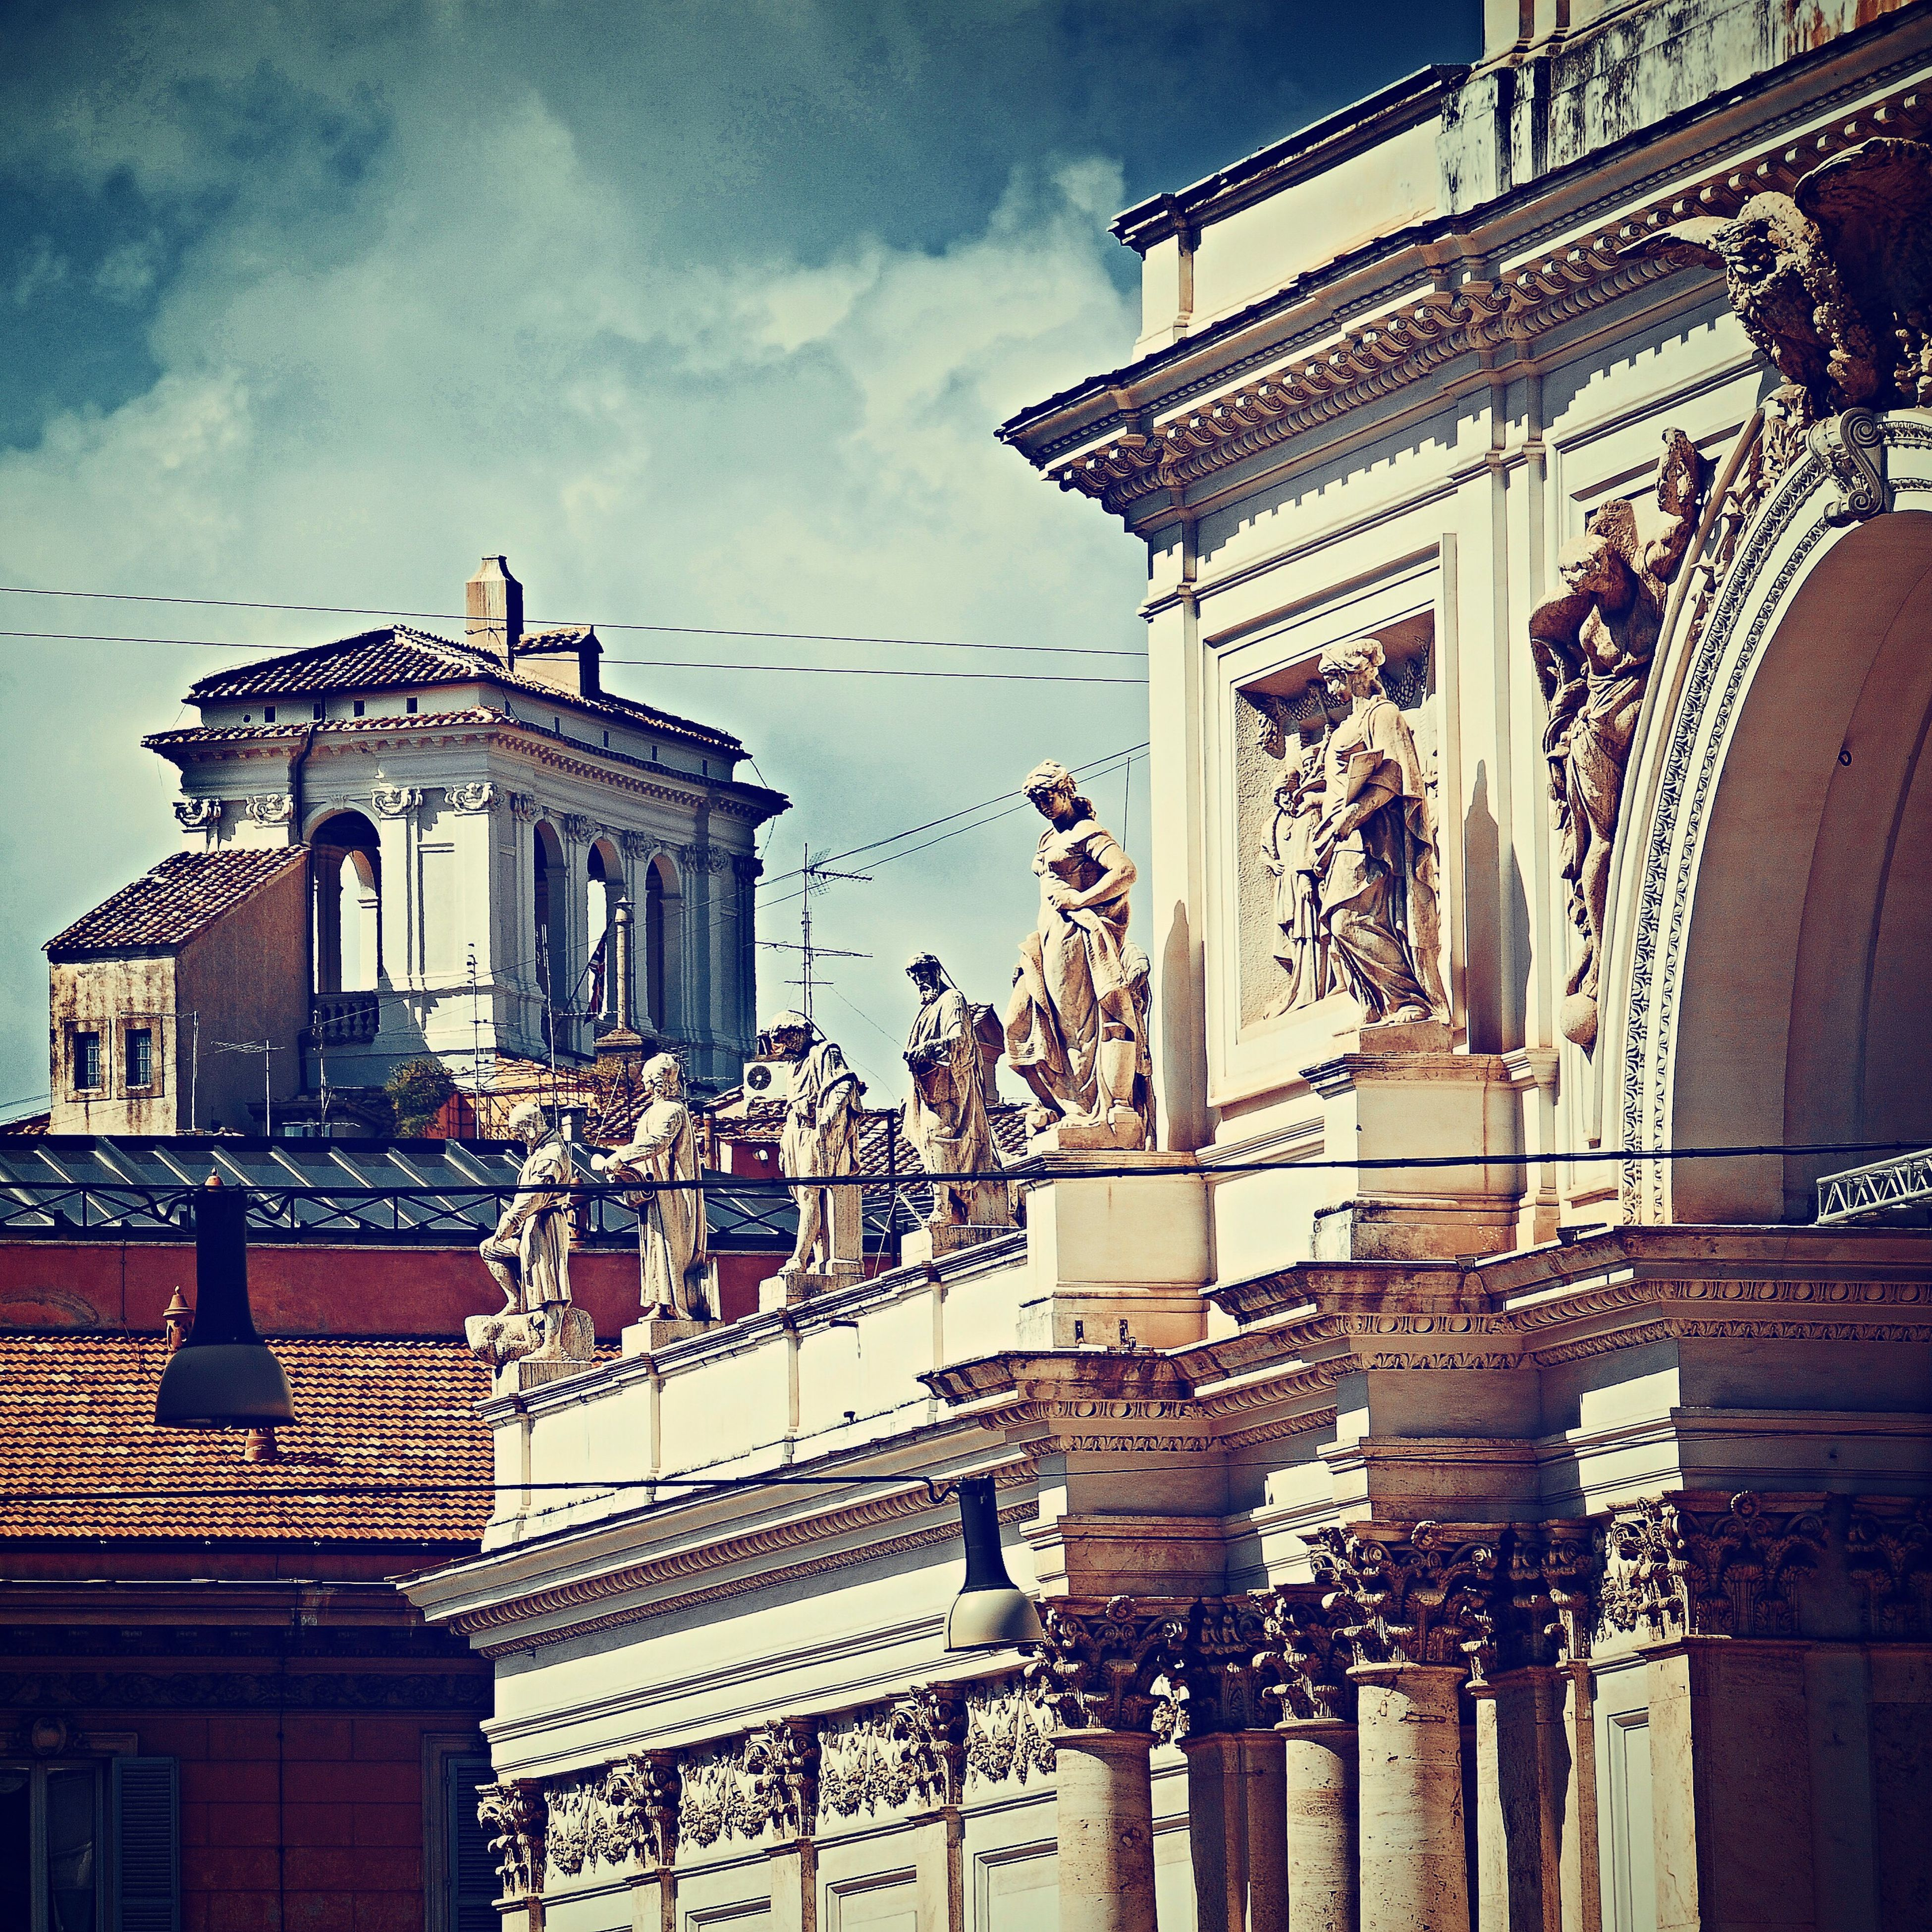 Architecture Building Exterior Built Structure Sky Travel Destinations Statue Low Angle View Sculpture No People Outdoors City Balcony Day Baroque Style